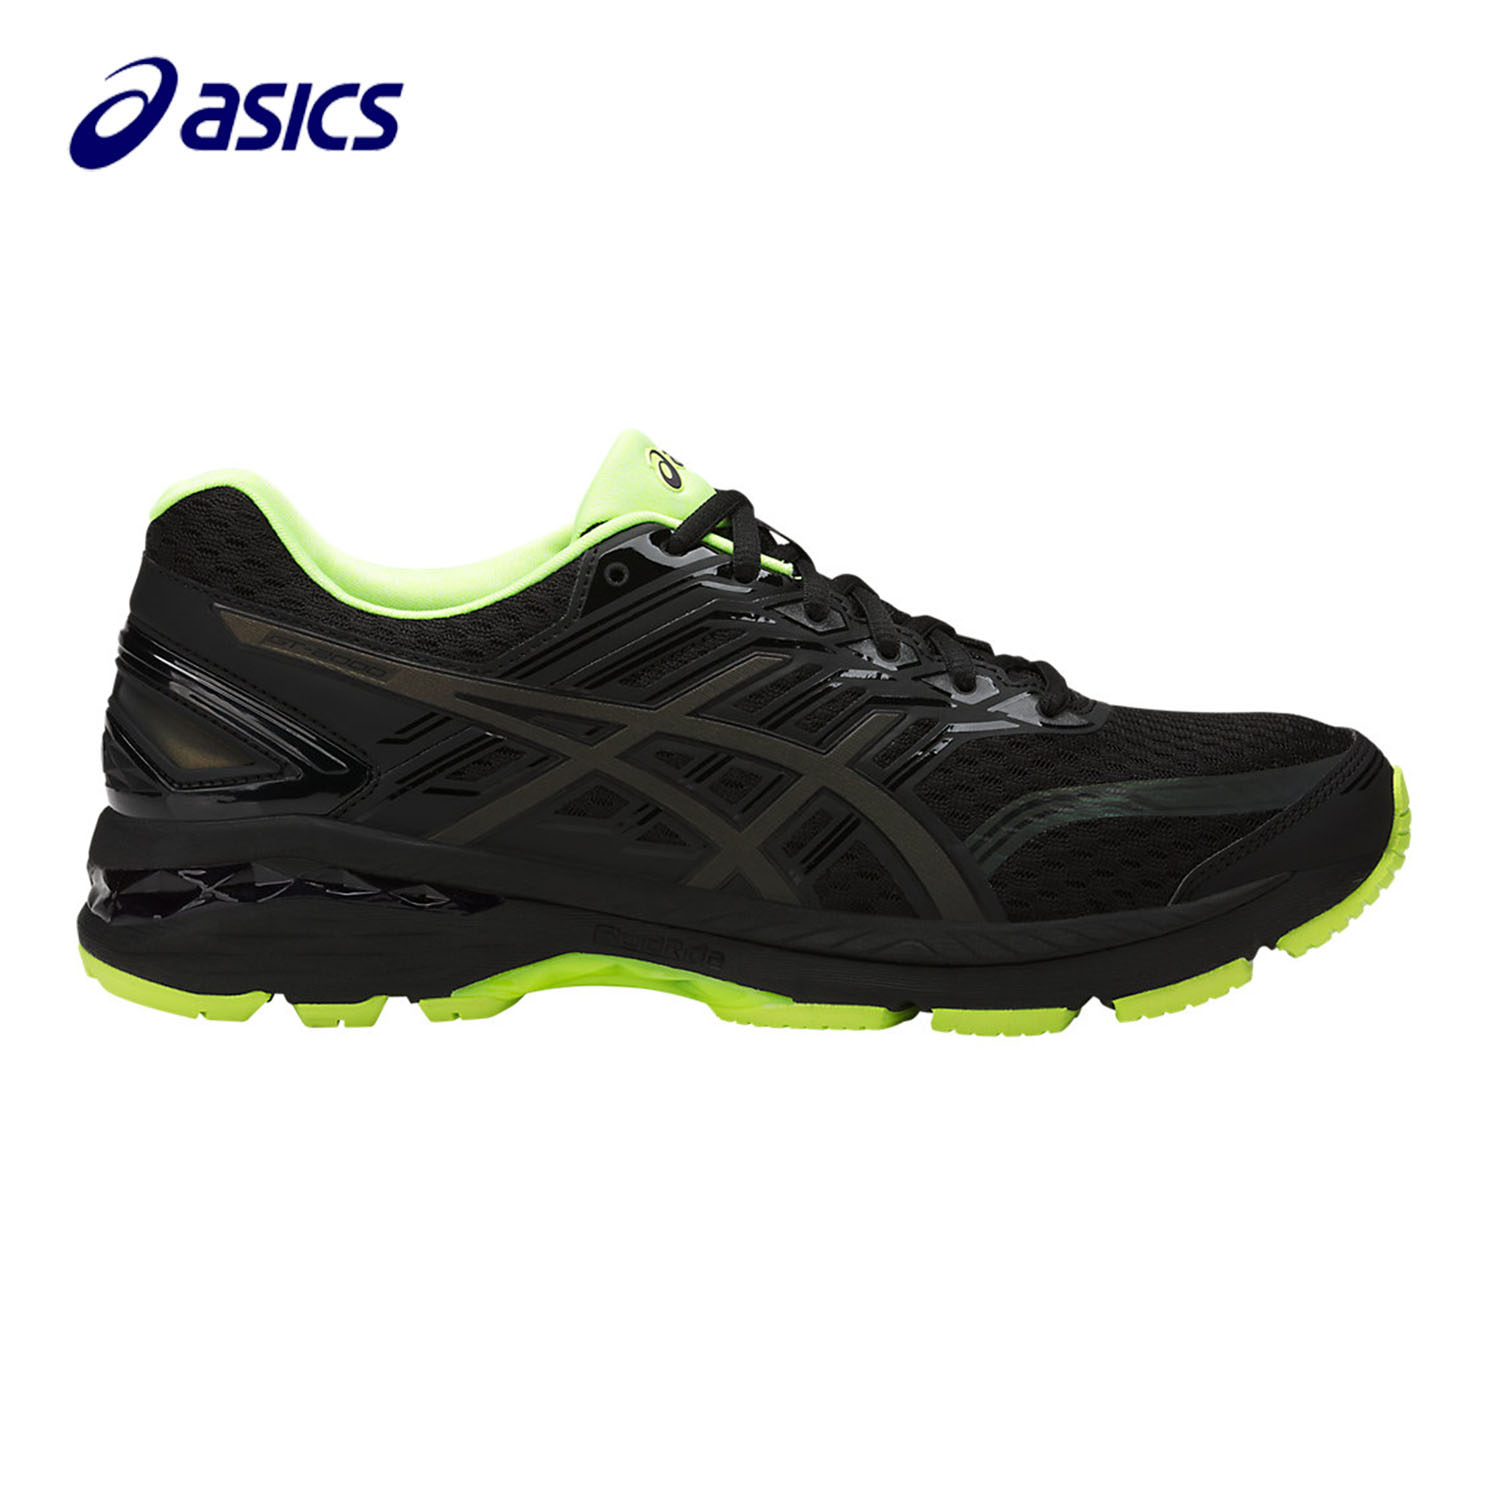 Orginal ASICS  new running shoes men's Breathable buffer Shoes Classic Outdoor Tennis Shoes  Leisure Non-slip T7E1N-9007 kelme 2016 new children sport running shoes football boots synthetic leather broken nail kids skid wearable shoes breathable 49